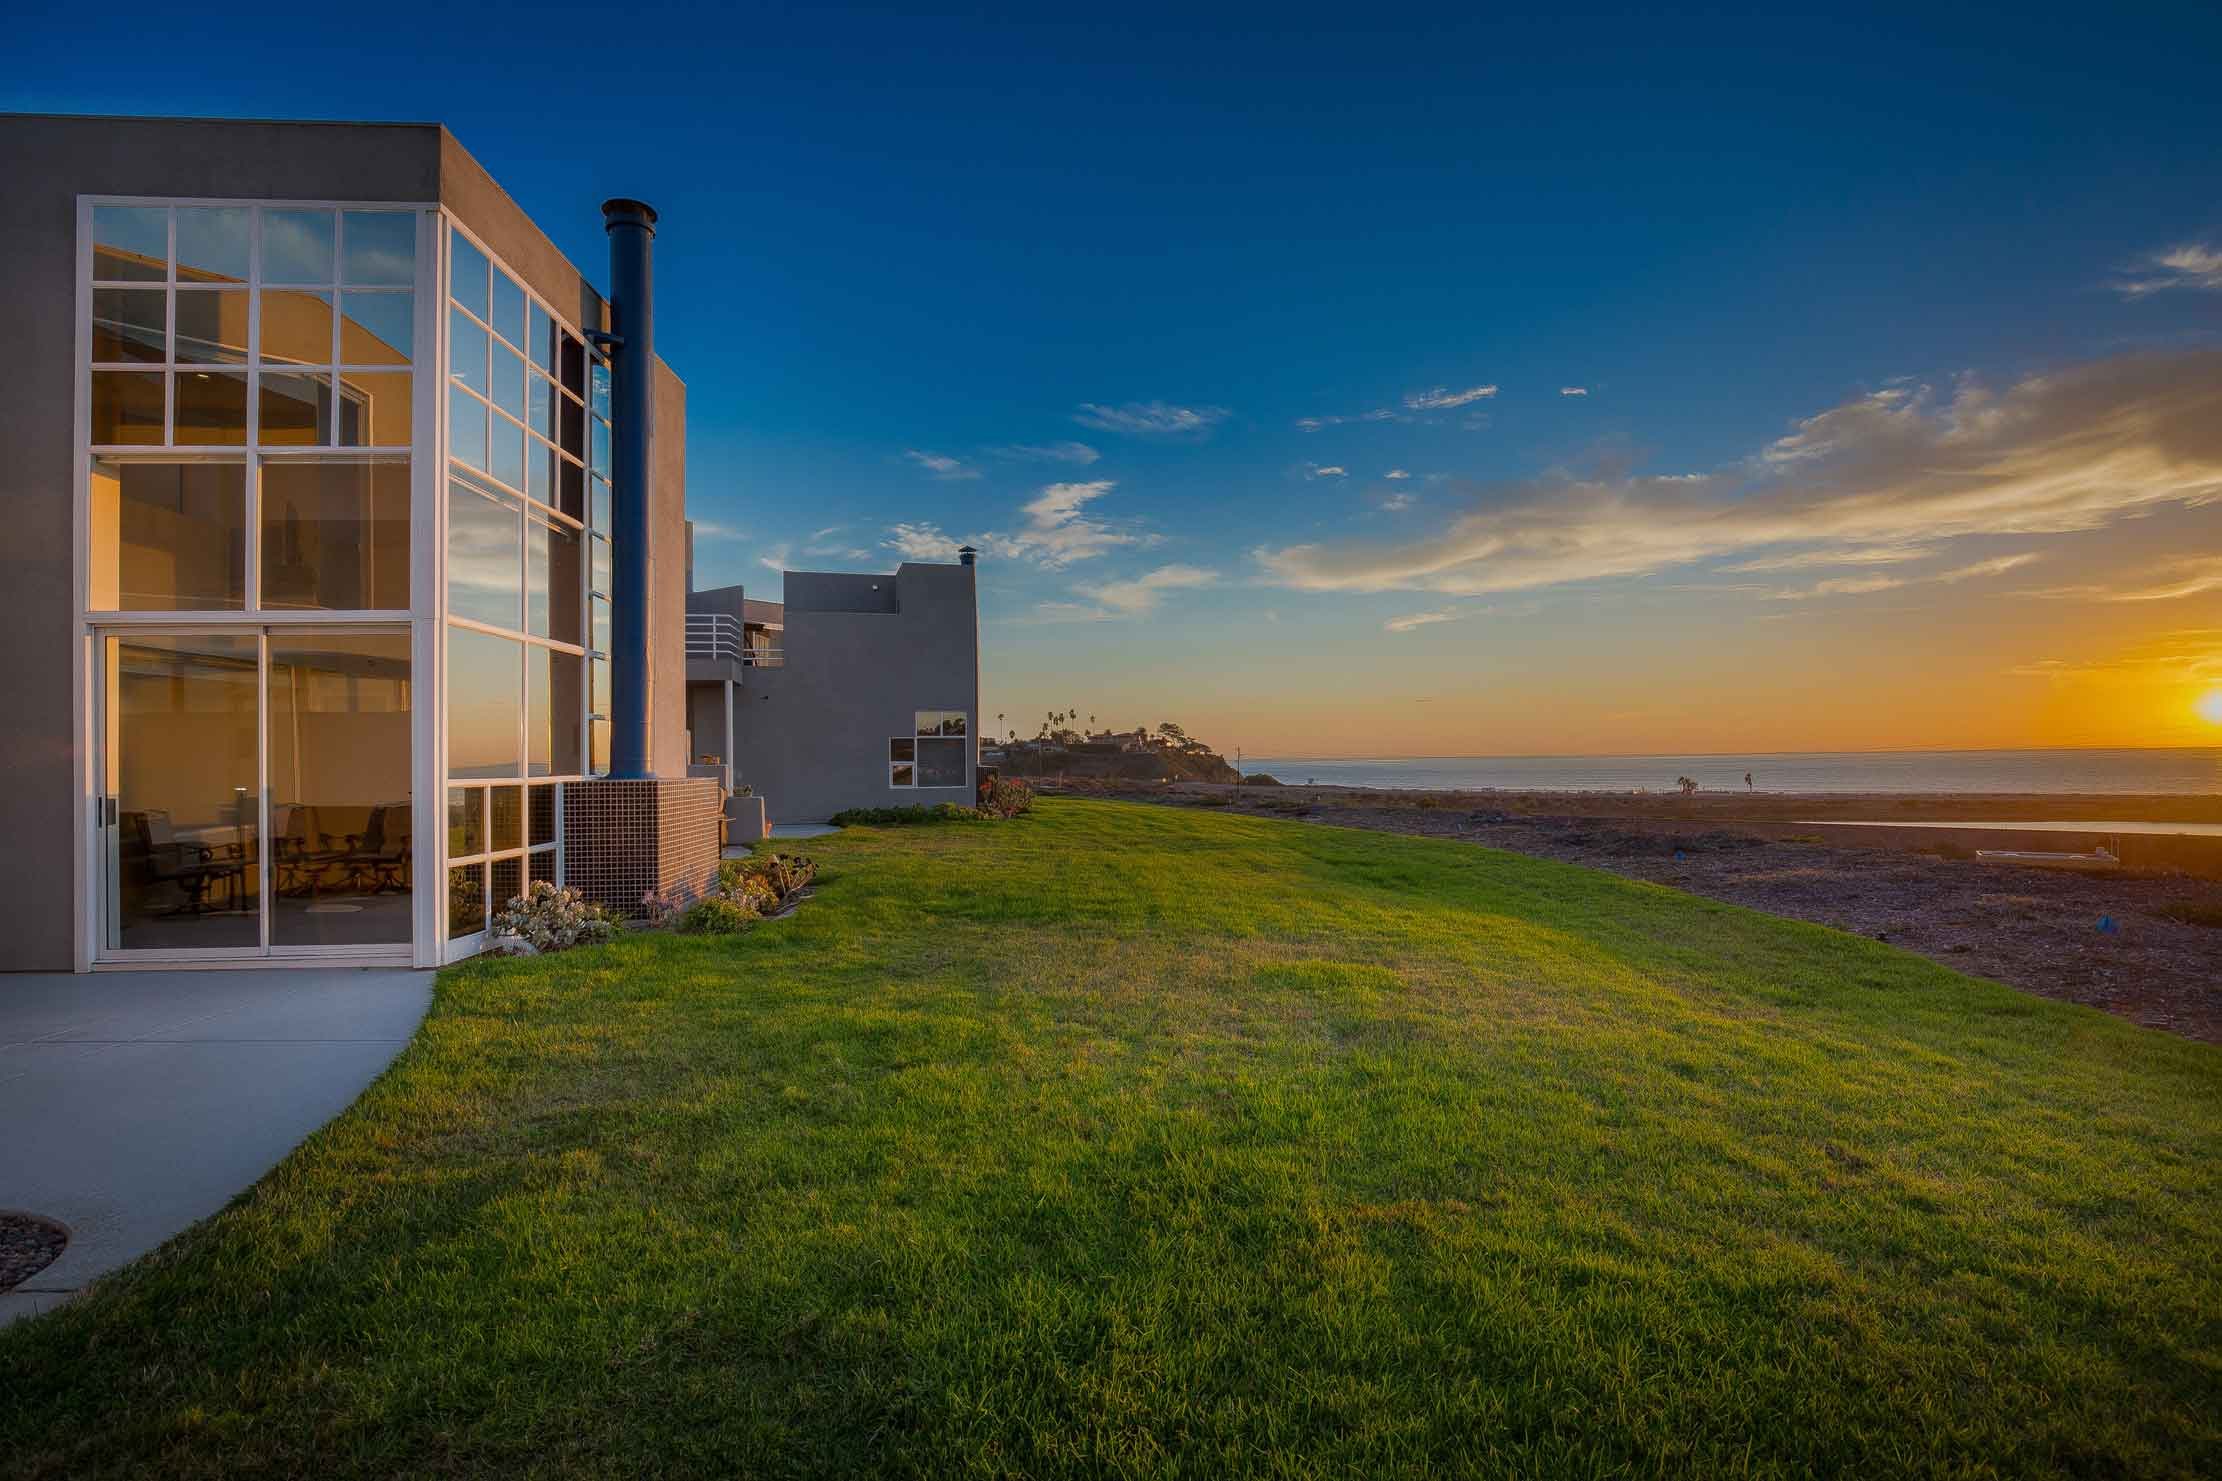 This contemporary condominium on the California coast, just north of San Diego, has a facade of glass that frames the majestic backdrop of Solana Beach and the Pacific Ocean.